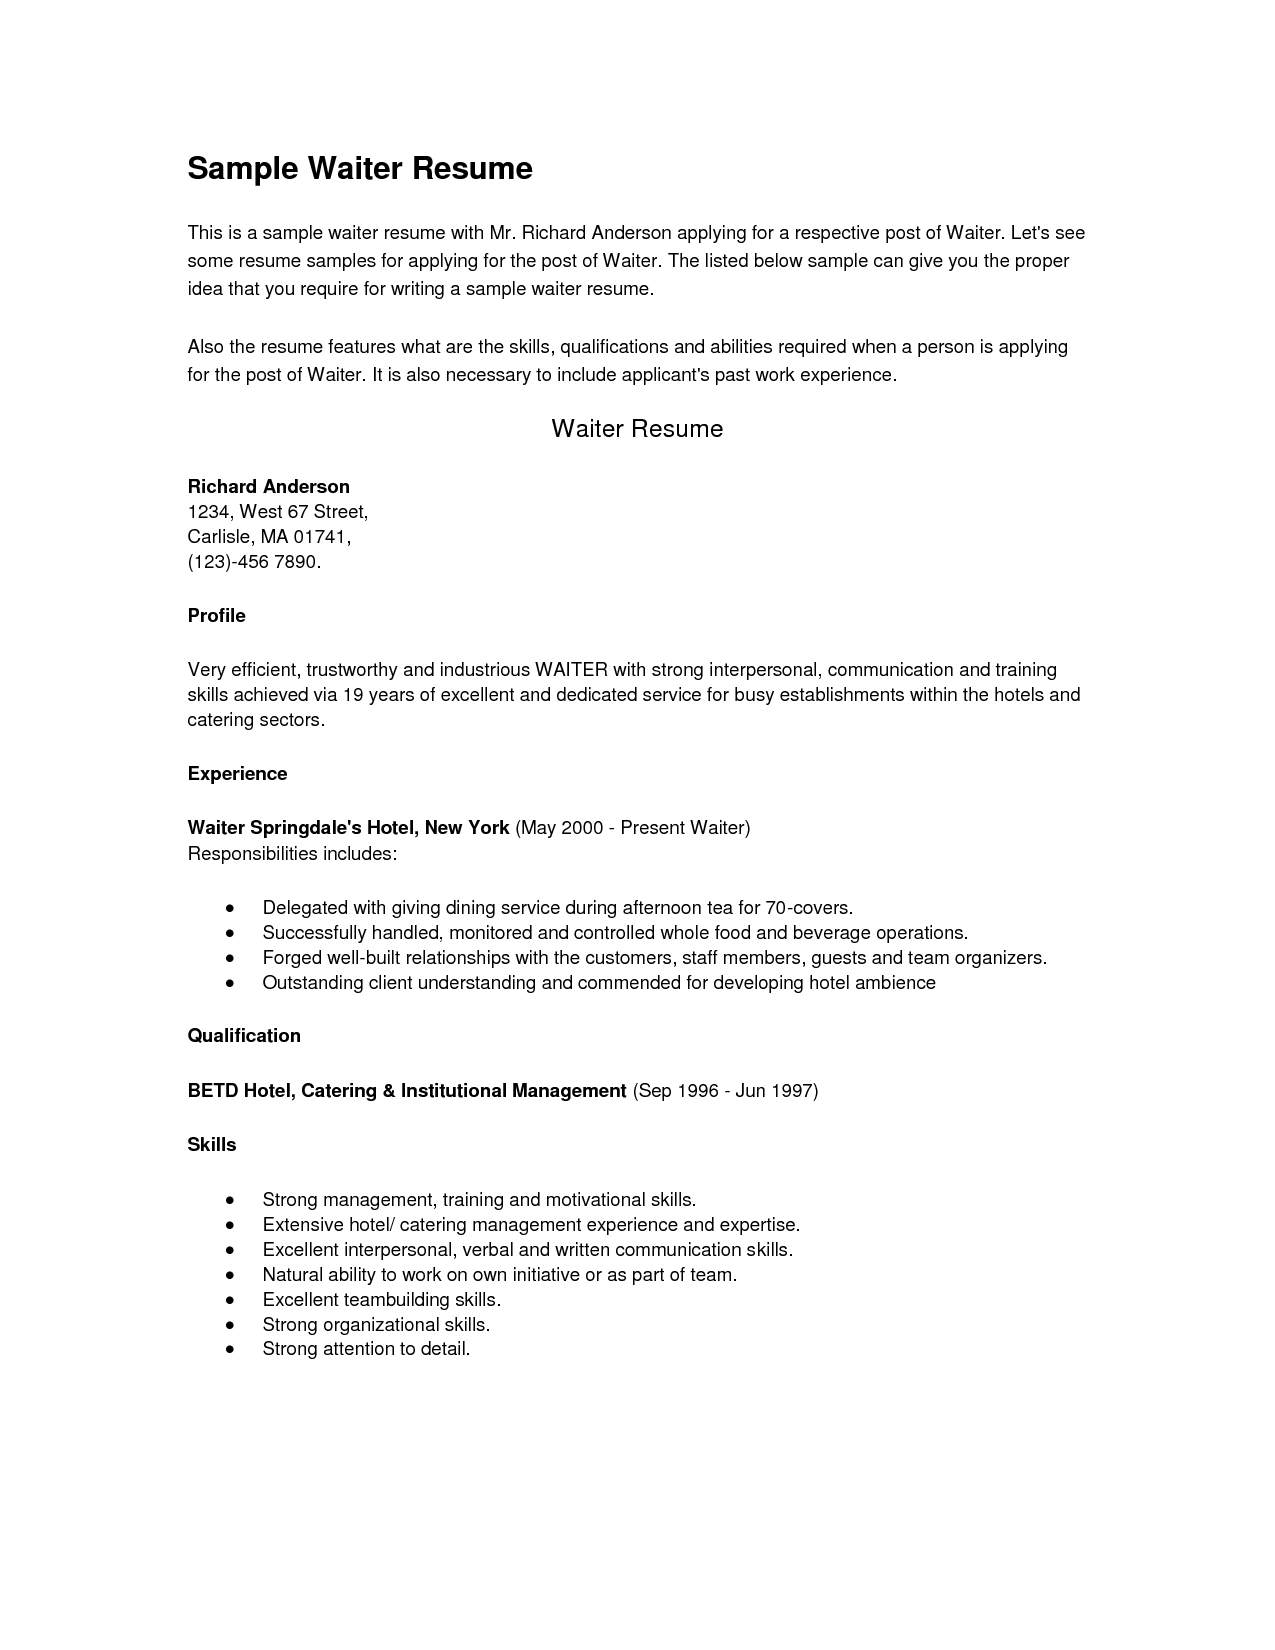 Skills And Abilities Resume Examples Resume Examples Waitress  Pinterest  Resume Examples And Free